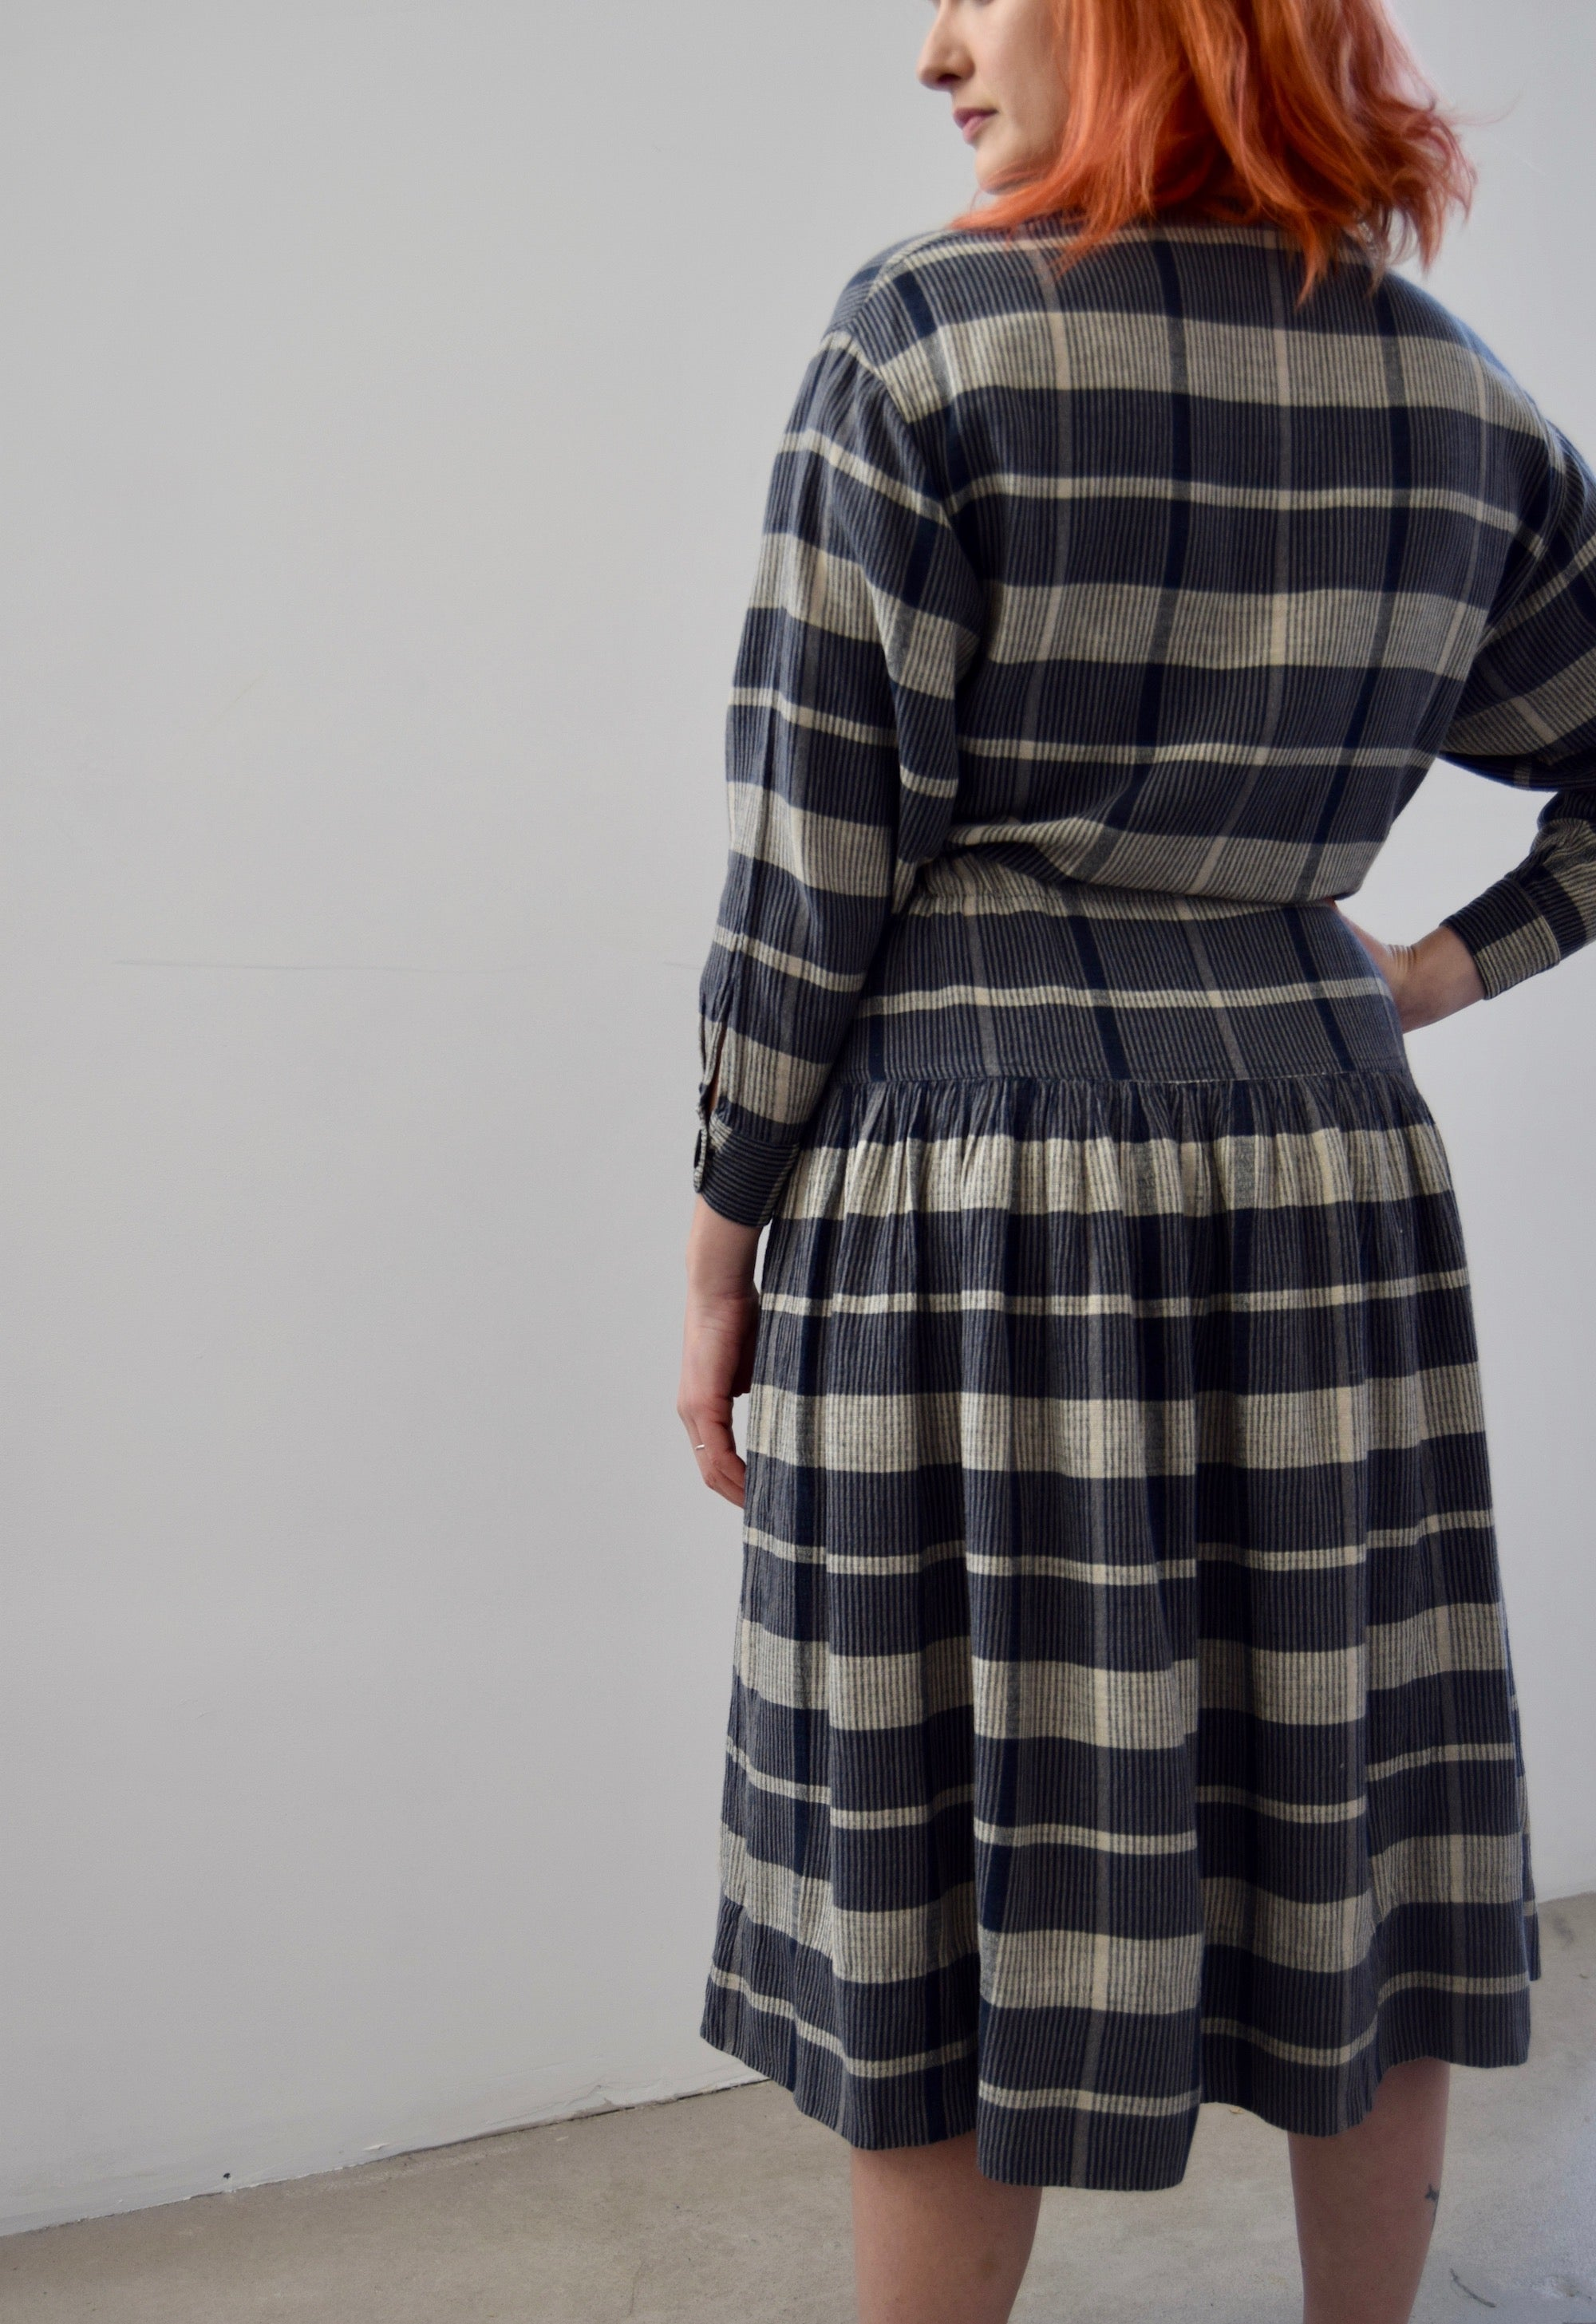 Steel Blue and Grey Plaid Cotton Dress